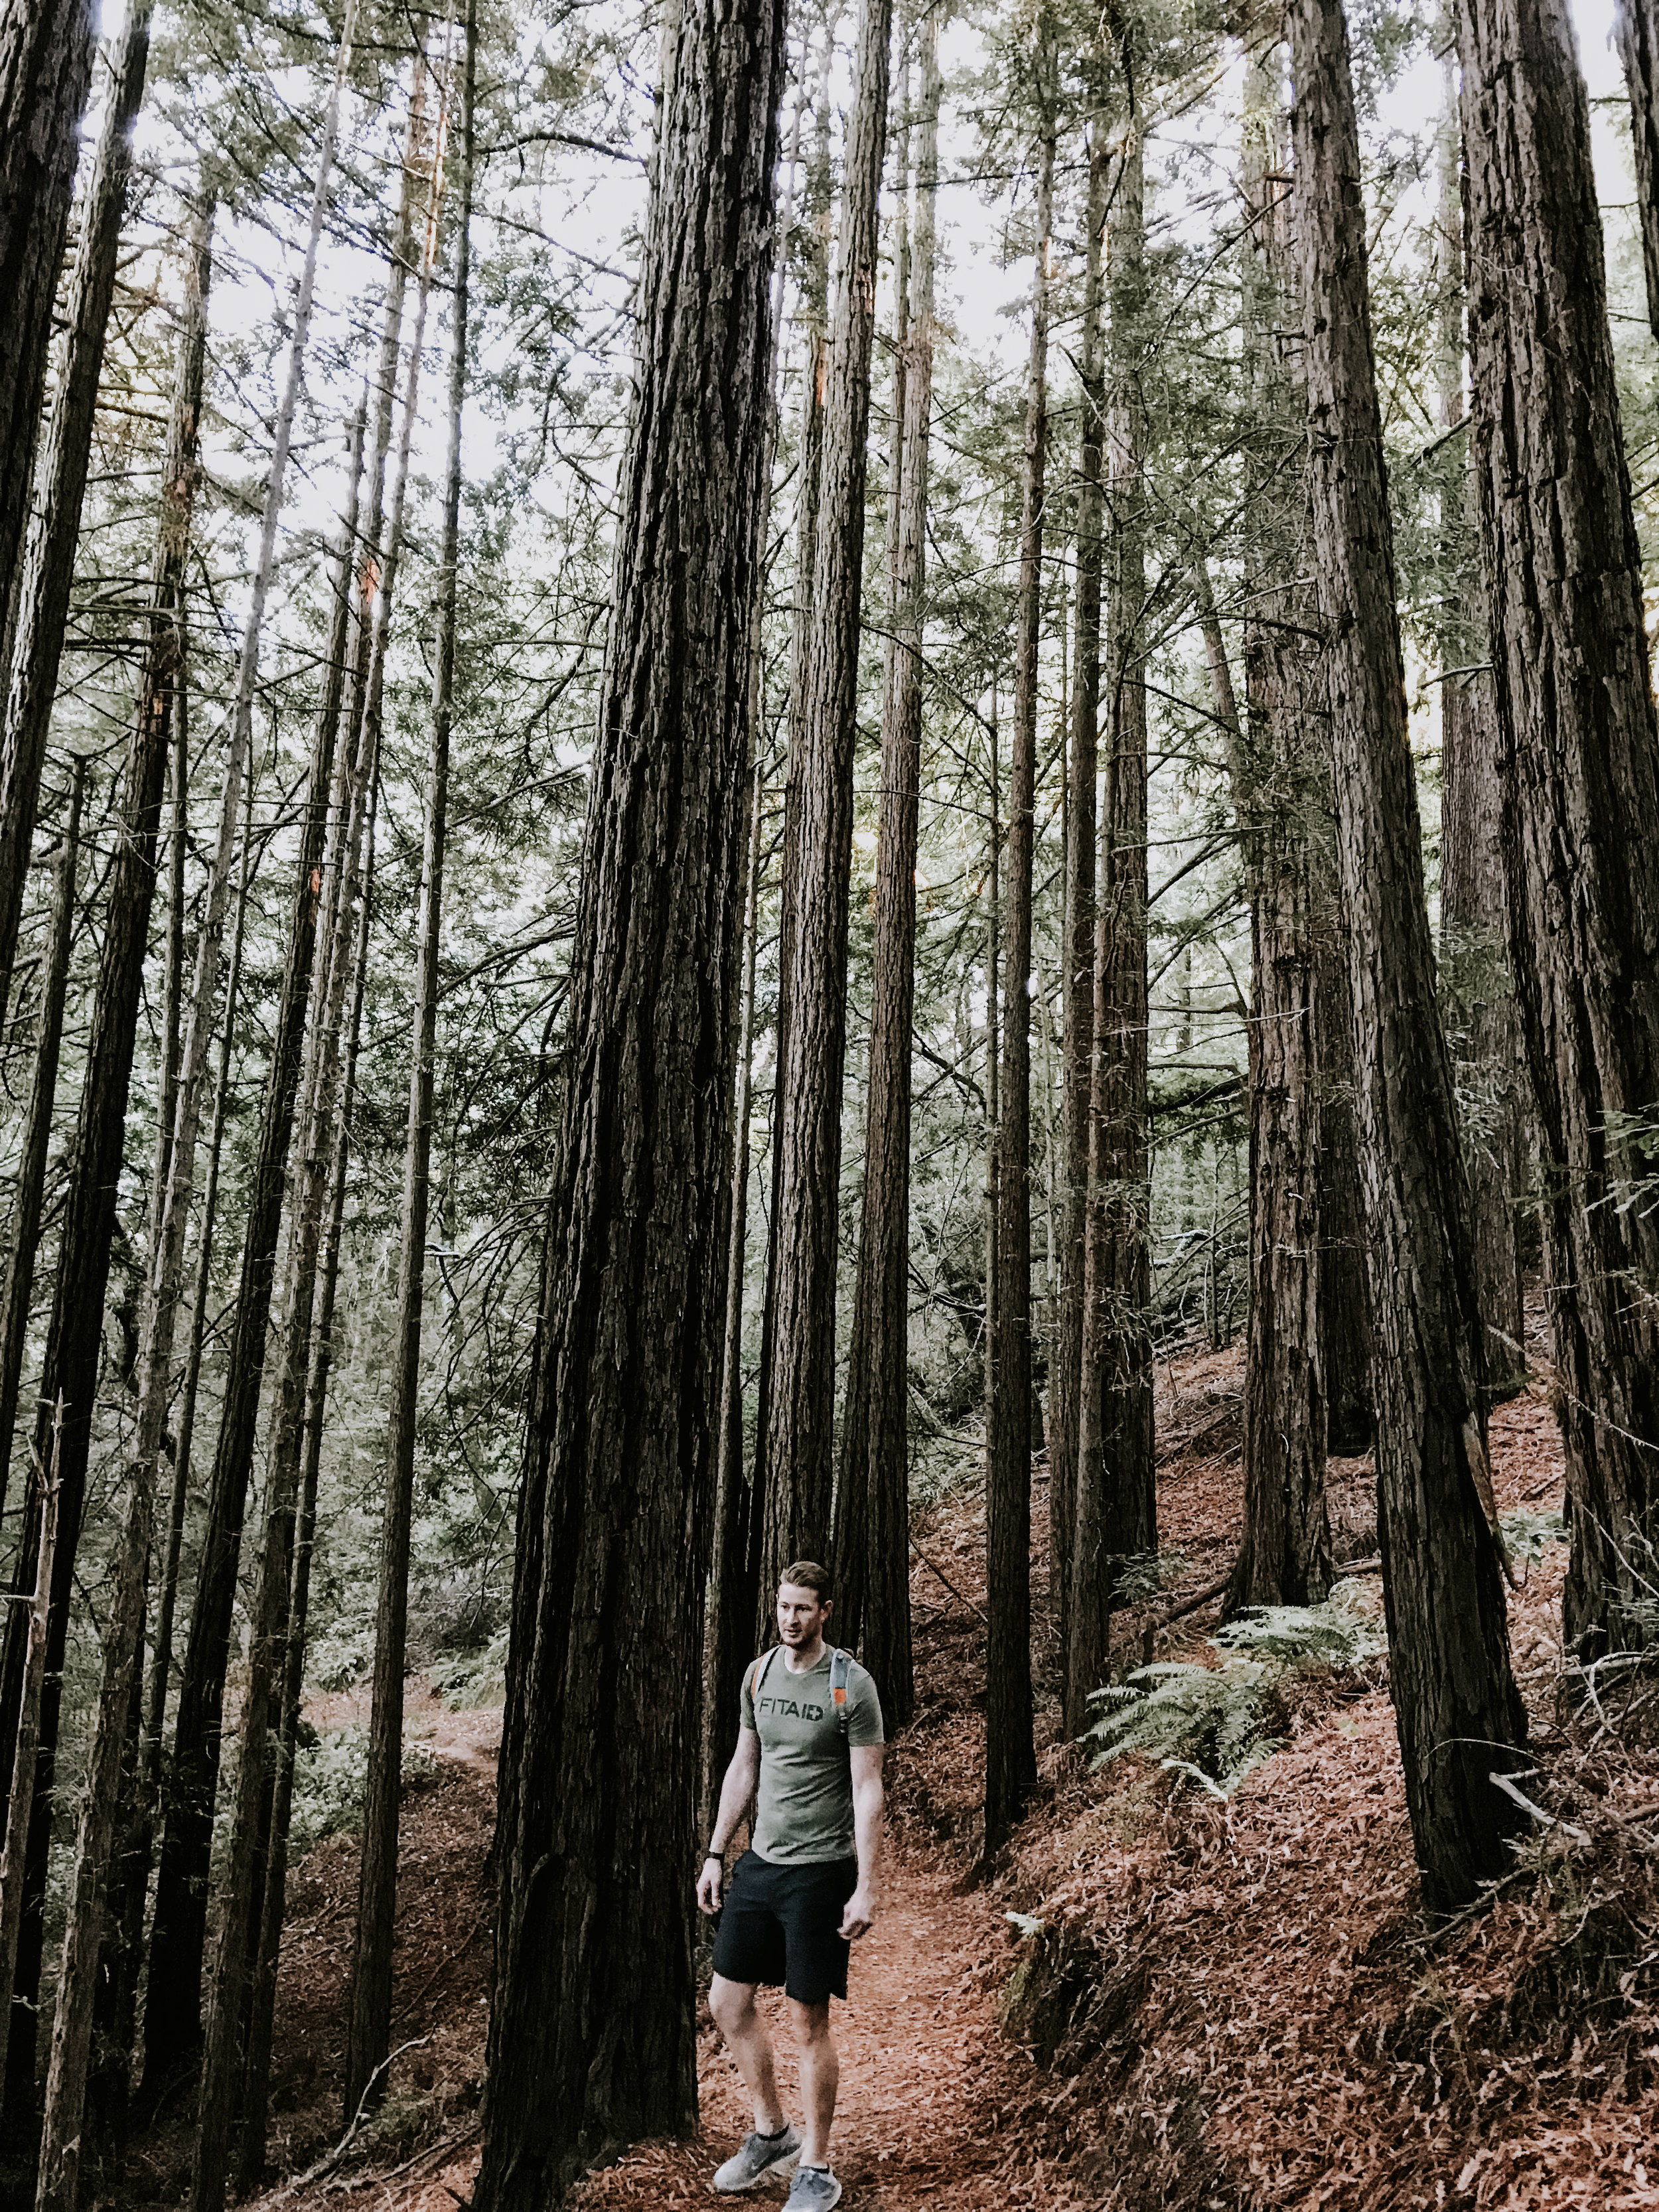 our trip to San Francisco - hiking in the redwoods in Mill Valley